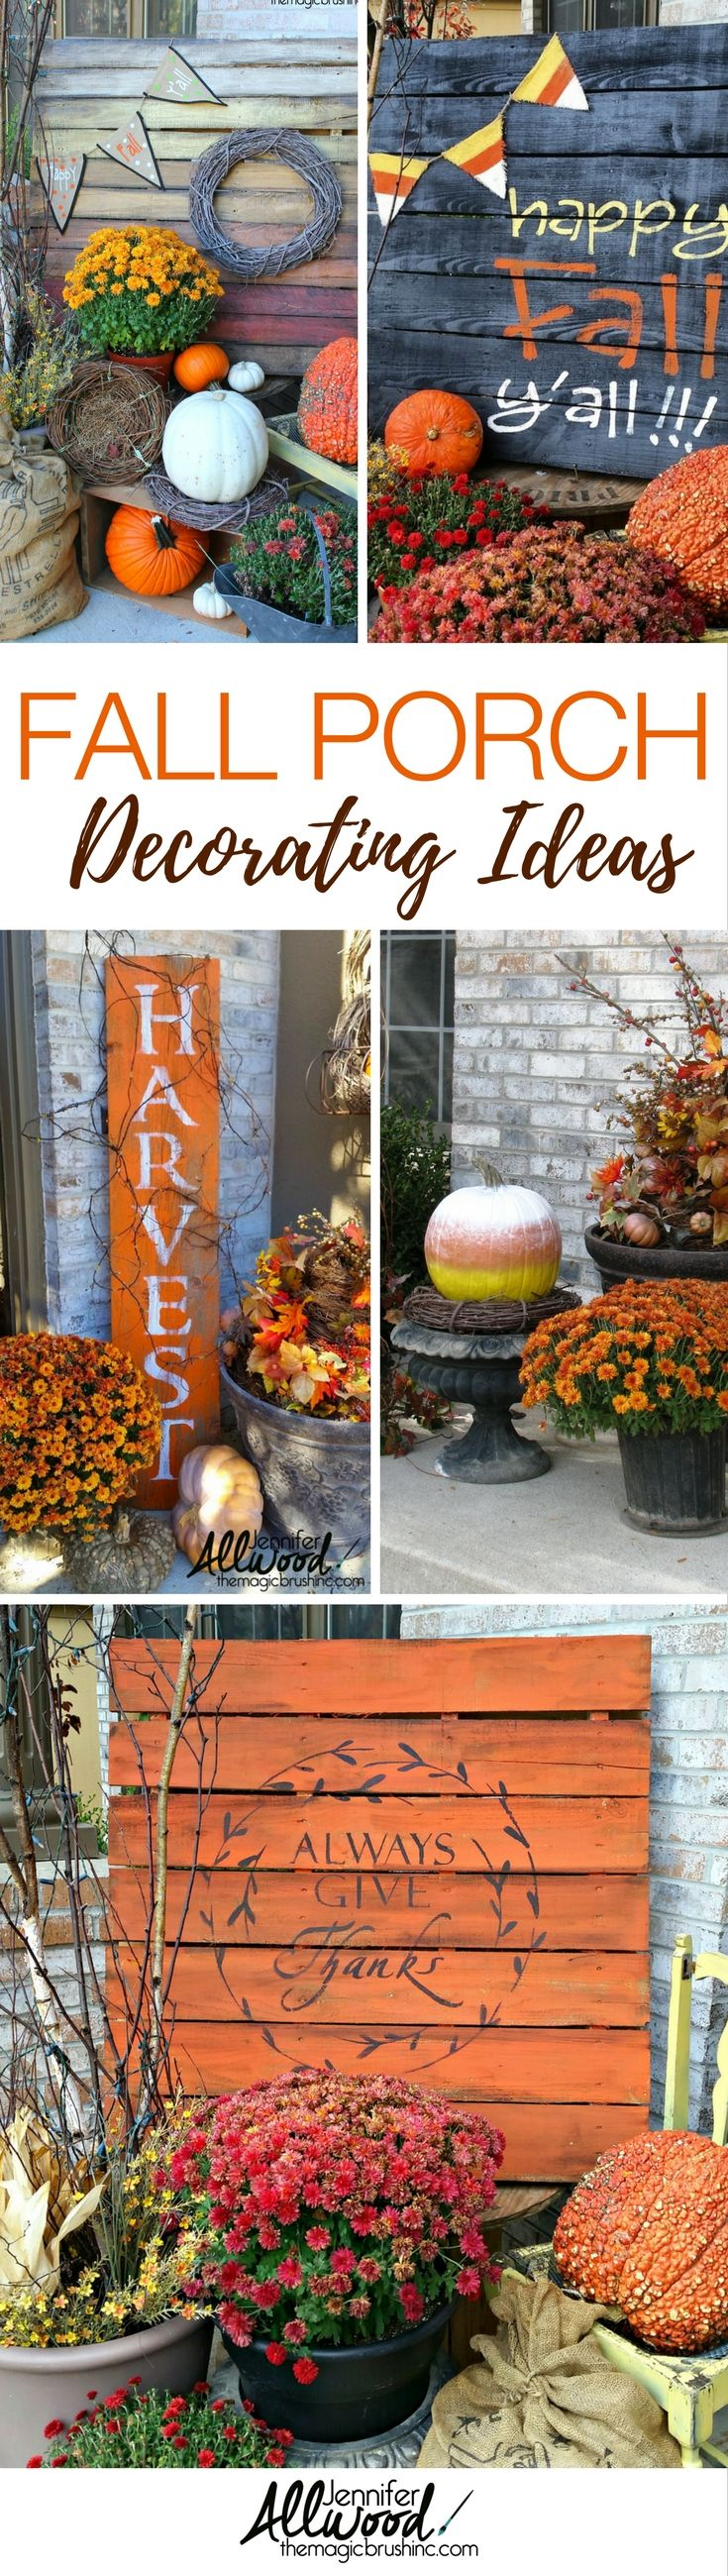 Doors pleasant fall decorating ideas for outside pinterest autumn - Fall Porch Decorations